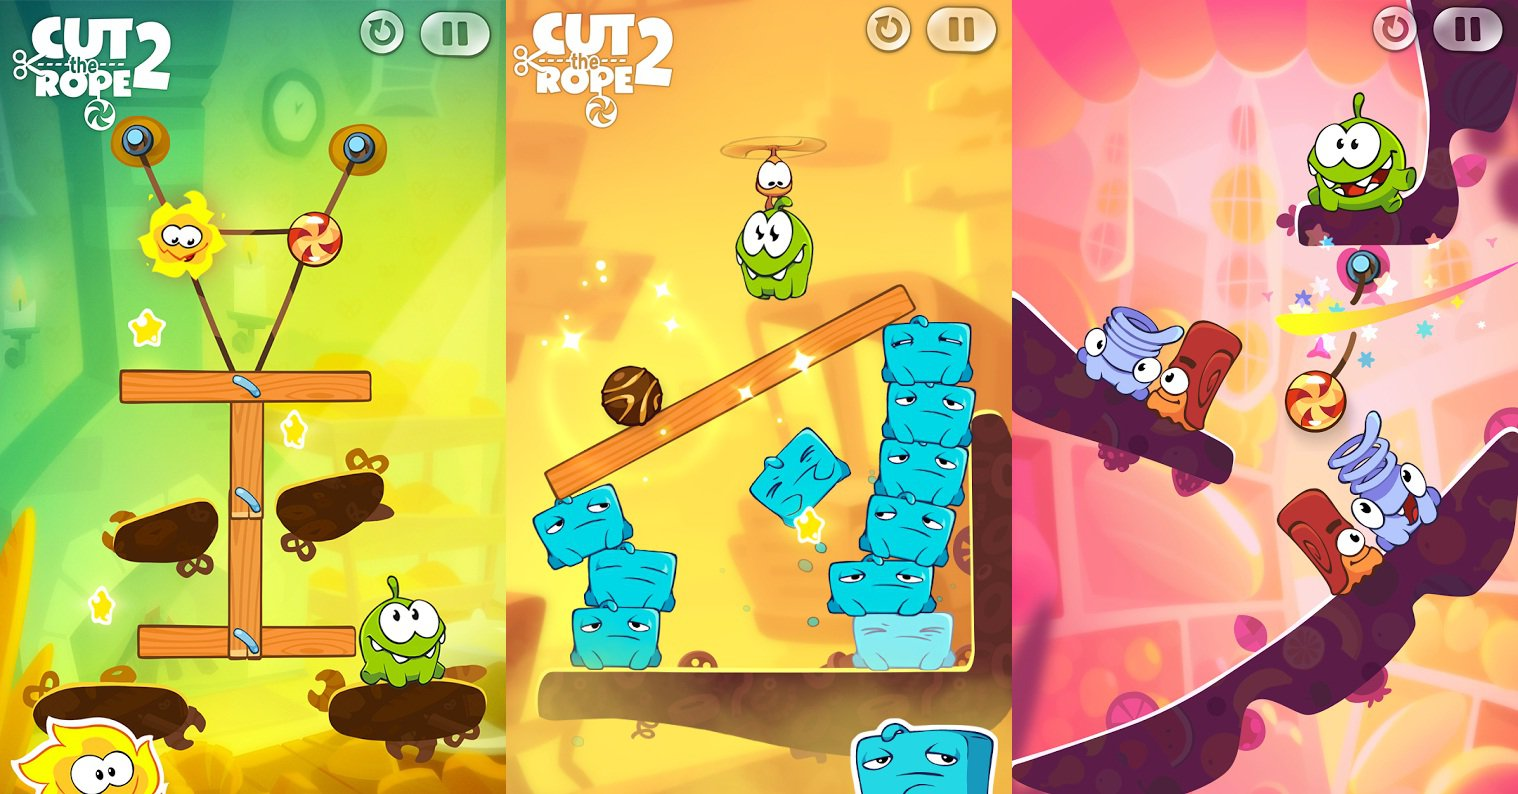 Cut The Rope 2 чит коды